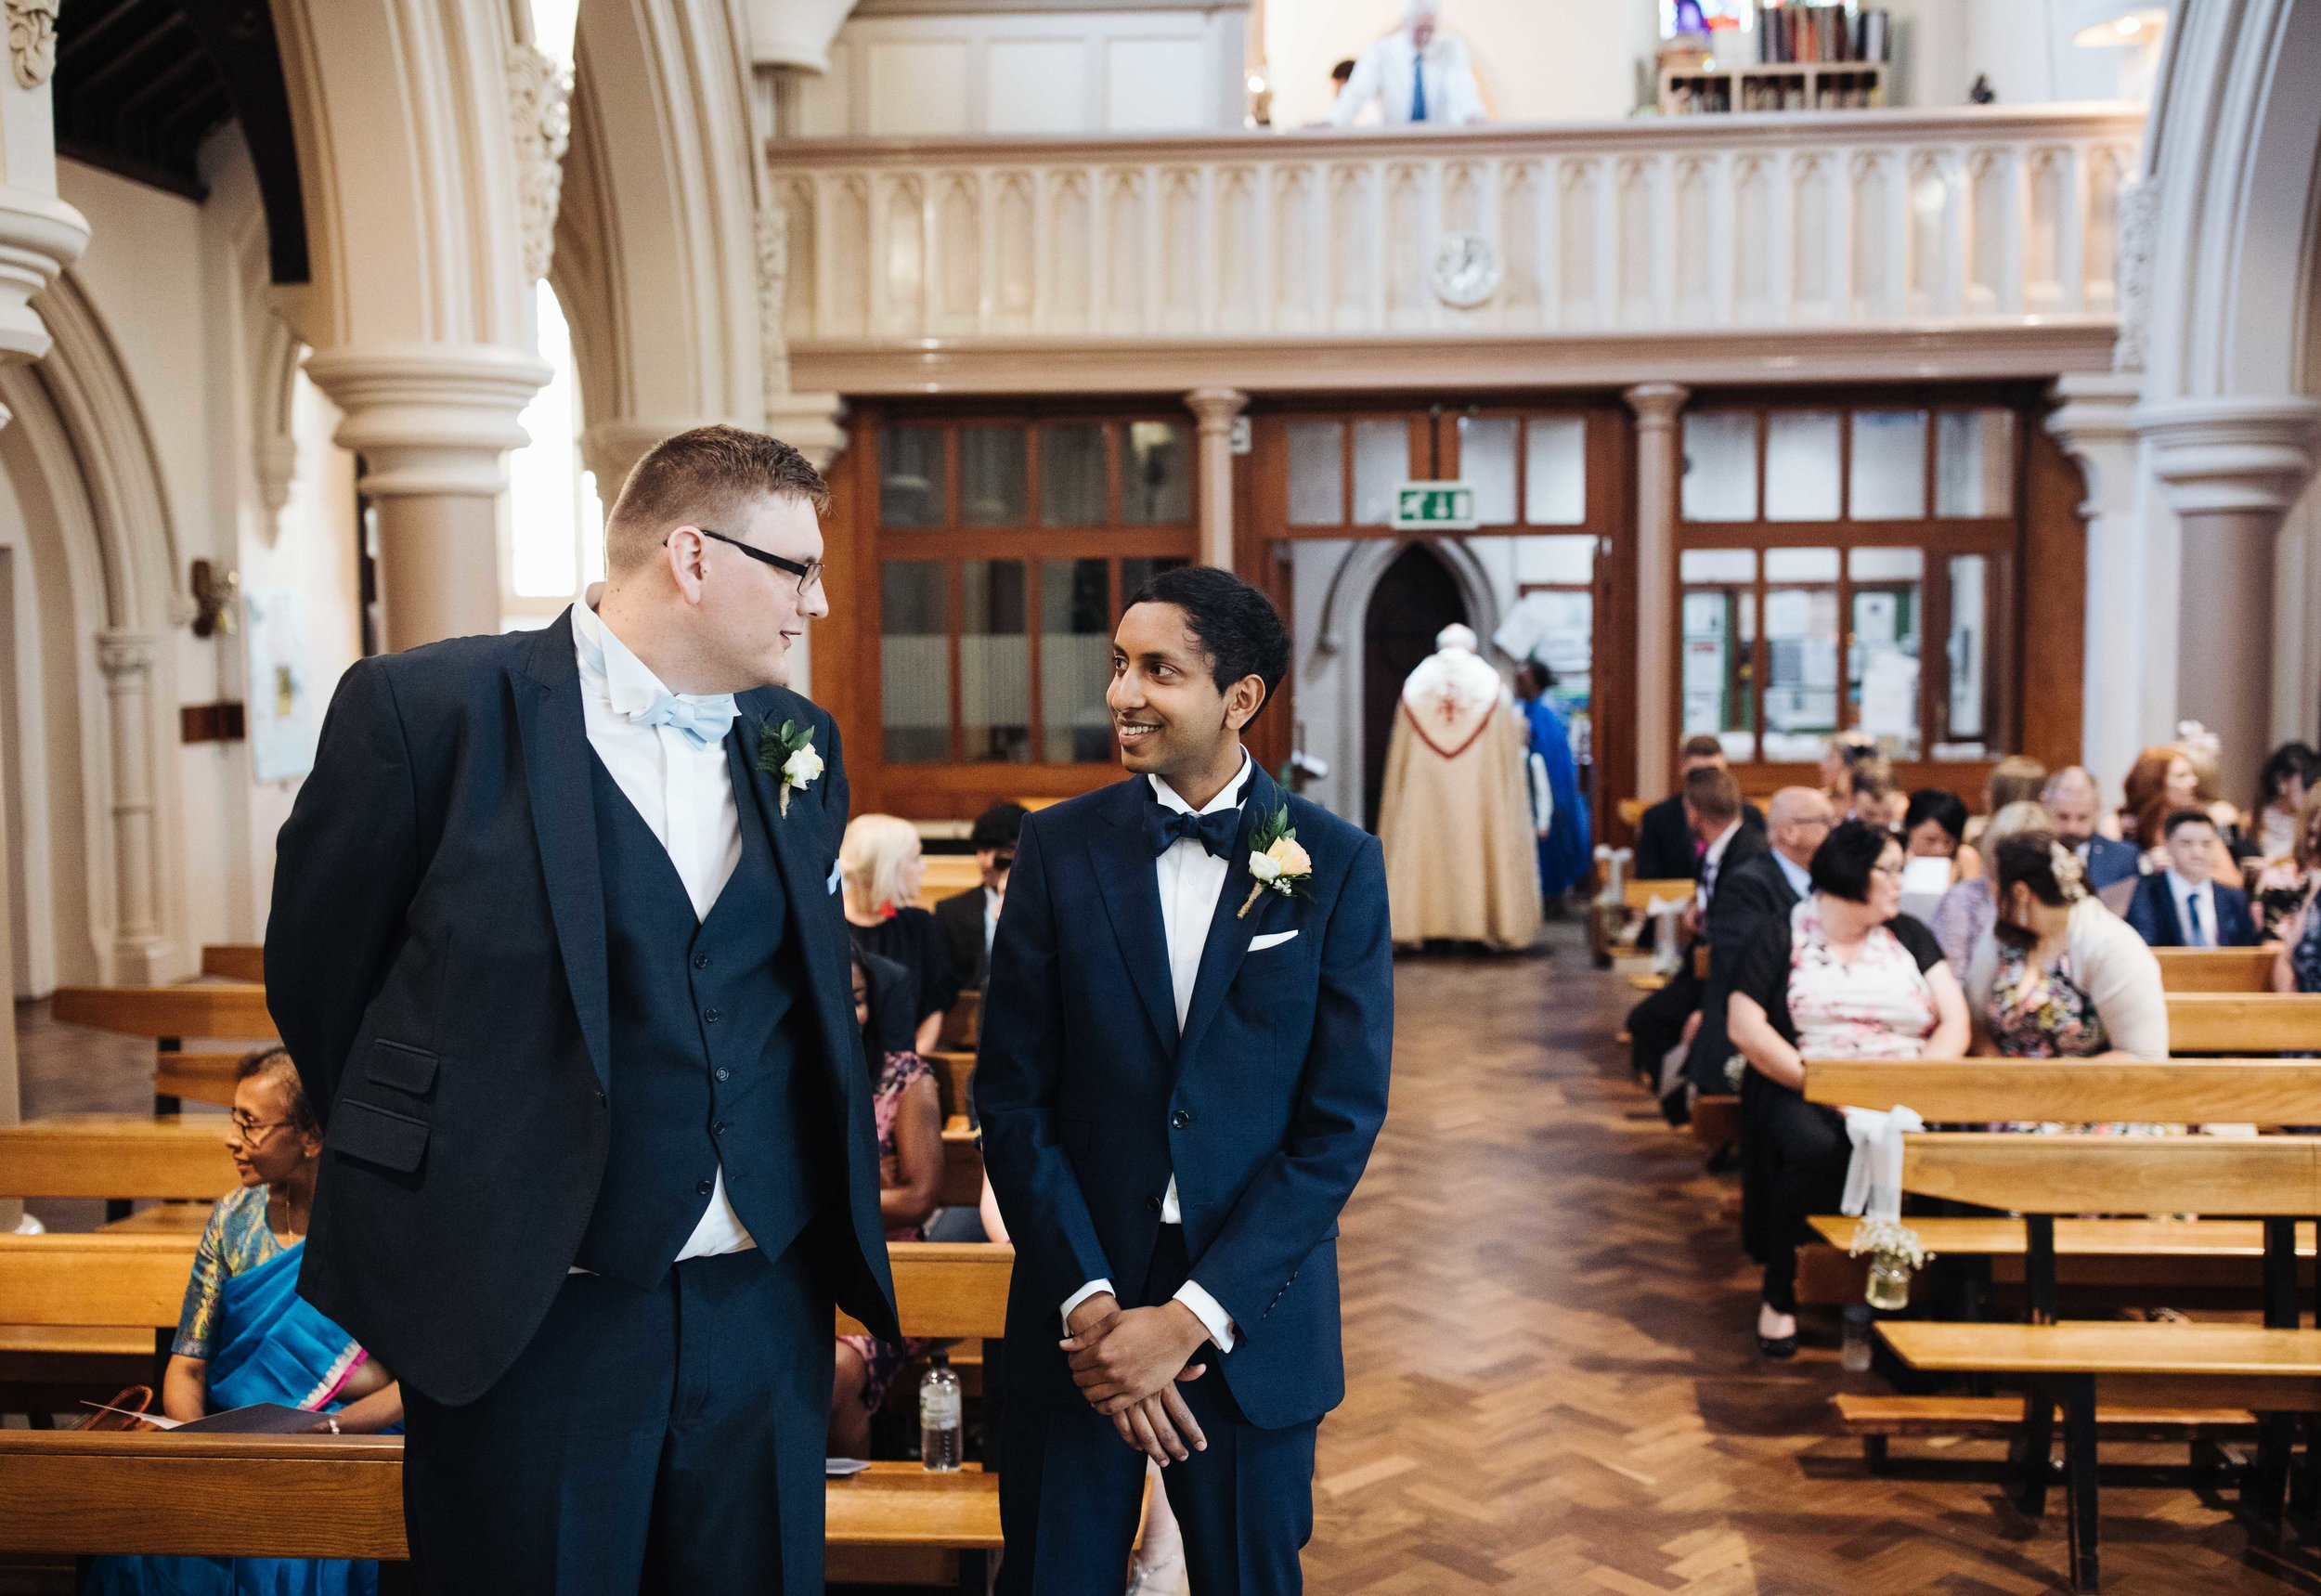 Jen & Satish Marleybrook House Wedding Photography -22.jpg